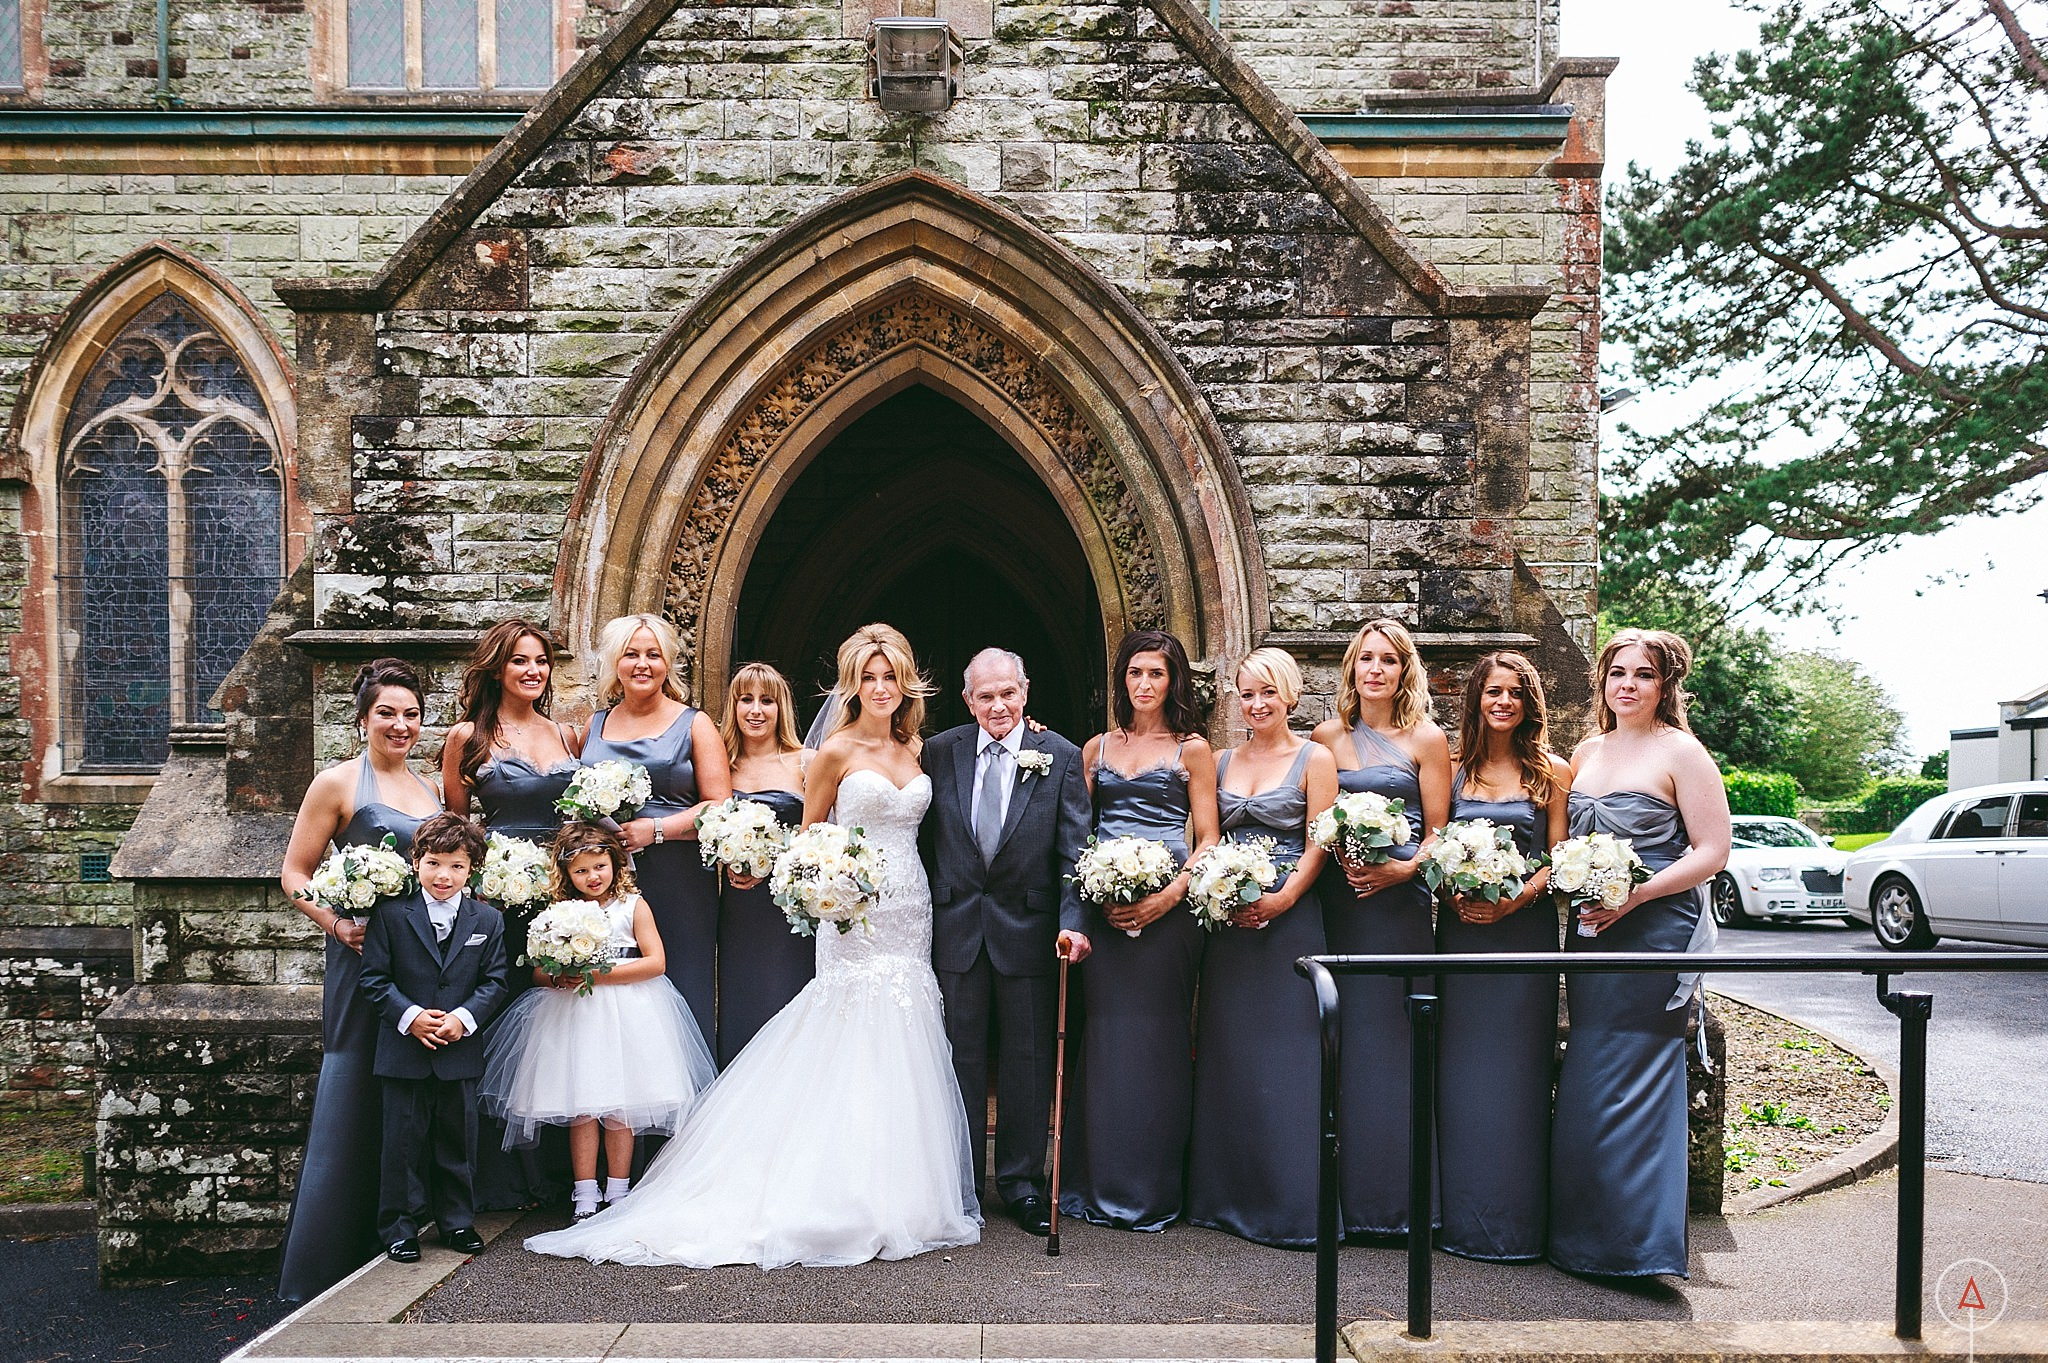 cardiff-wedding-photographer-aga-tomaszek_0372